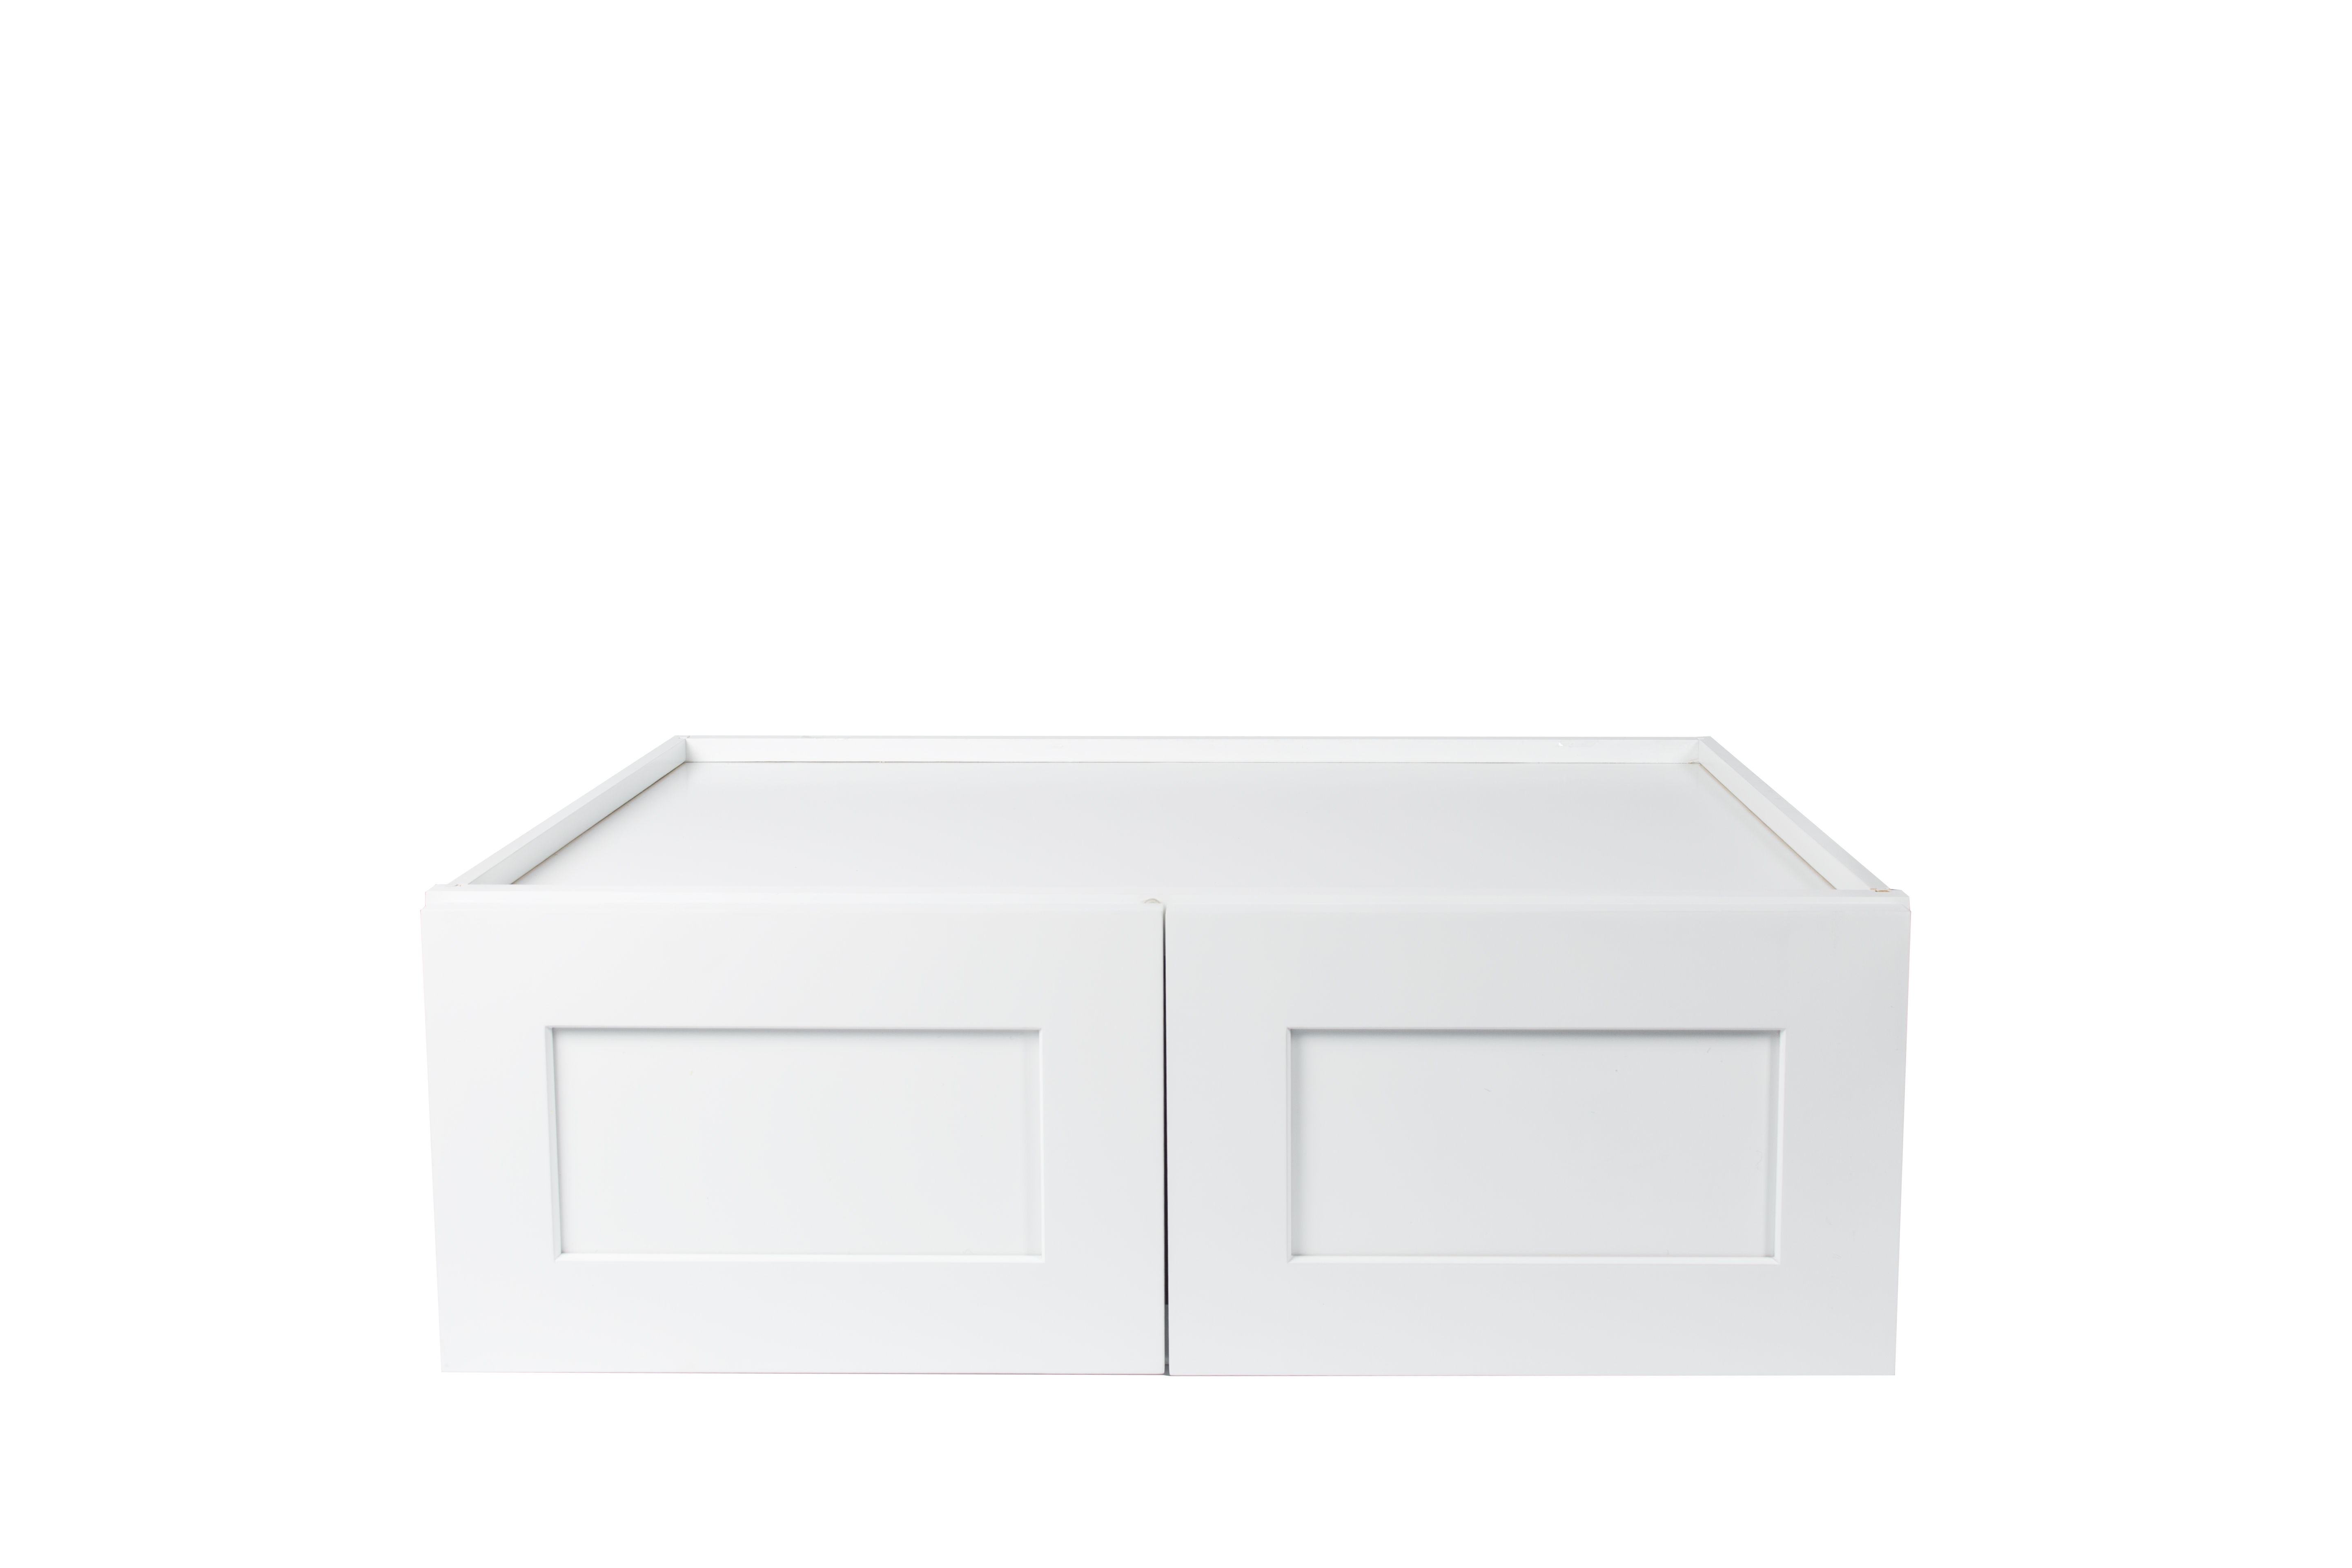 Ready to Assemble 33x15x12 in. Shaker High Double Door Wall Cabinet in White